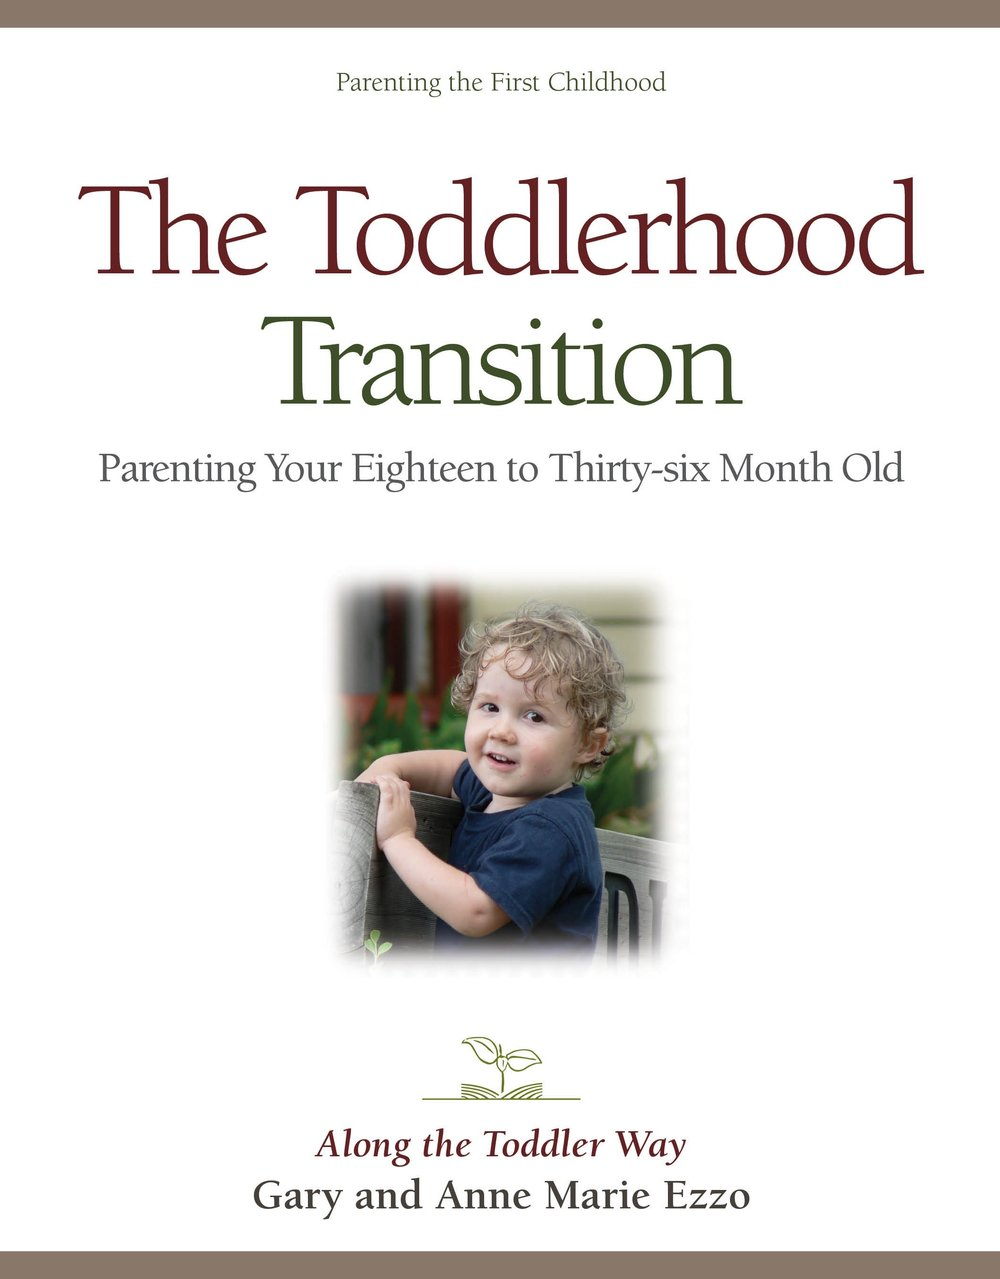 """In just over a year-and-a-half, the once helpless infant emerges as a little moving, walking, talking, exploratory person marked by keen senses, clear memory, quick perceptions, and unlimited energy. He emerges into a period of life known affectionately as the """"Toddler Years"""".  The Toddlerhood Transition  series focuses on a brief, but significant window of growth; a vibrant period of a child's life, from eighteen to thirty-six months-of-age. This is an amazing, spontaneous, engaging, yet challenging period for the emerging child and his parents."""